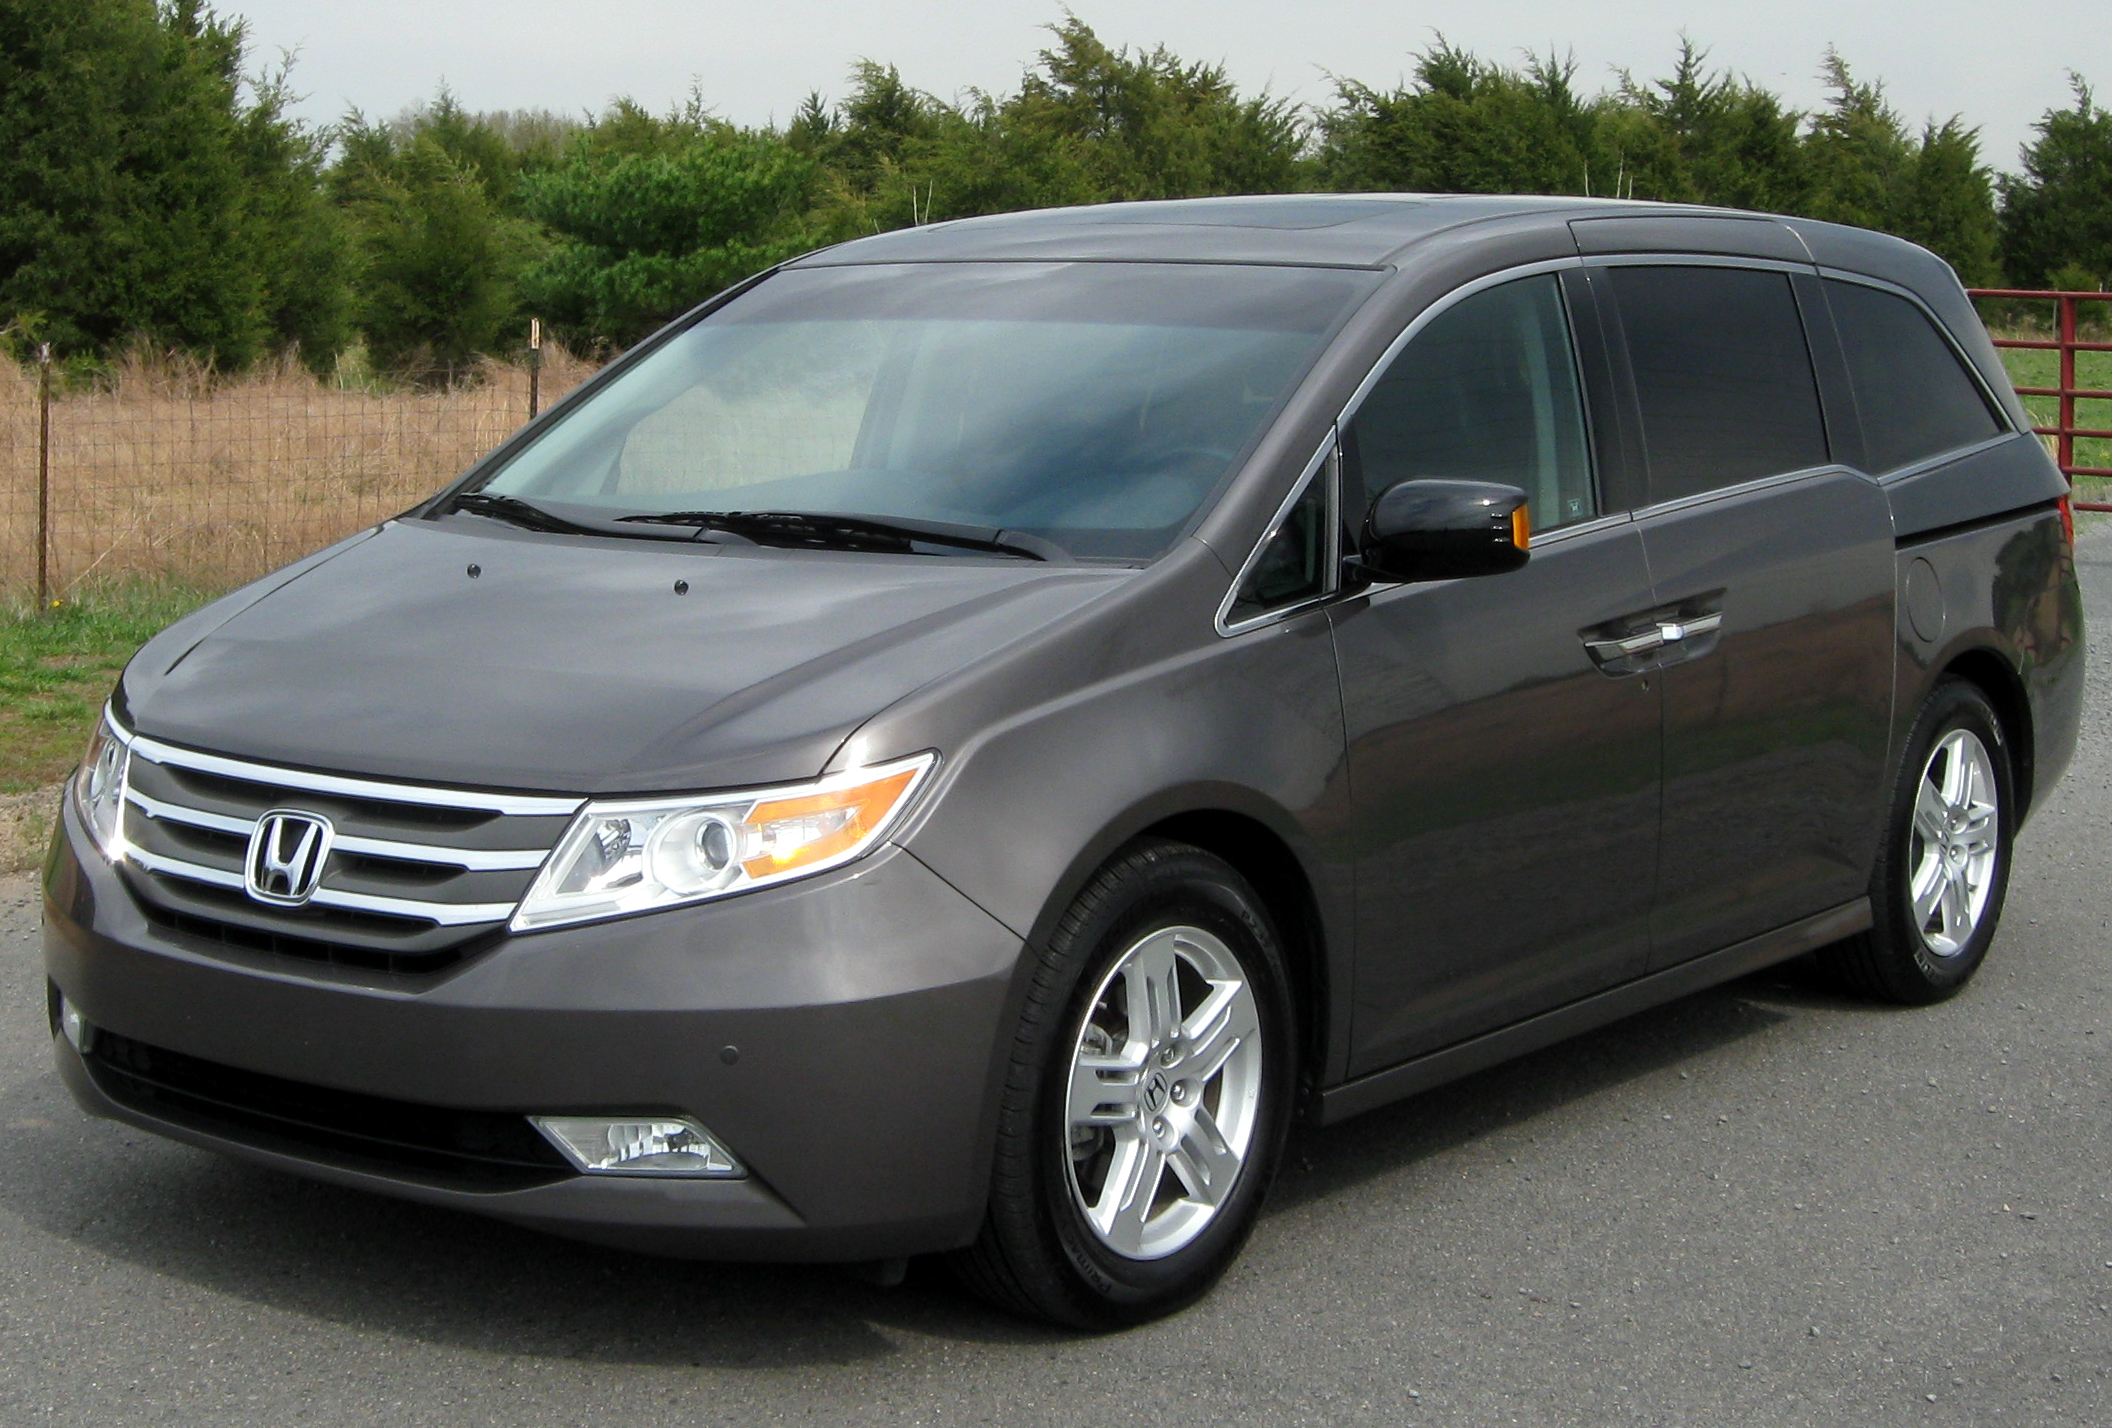 2014 honda odyssey iv pictures information and specs auto. Black Bedroom Furniture Sets. Home Design Ideas